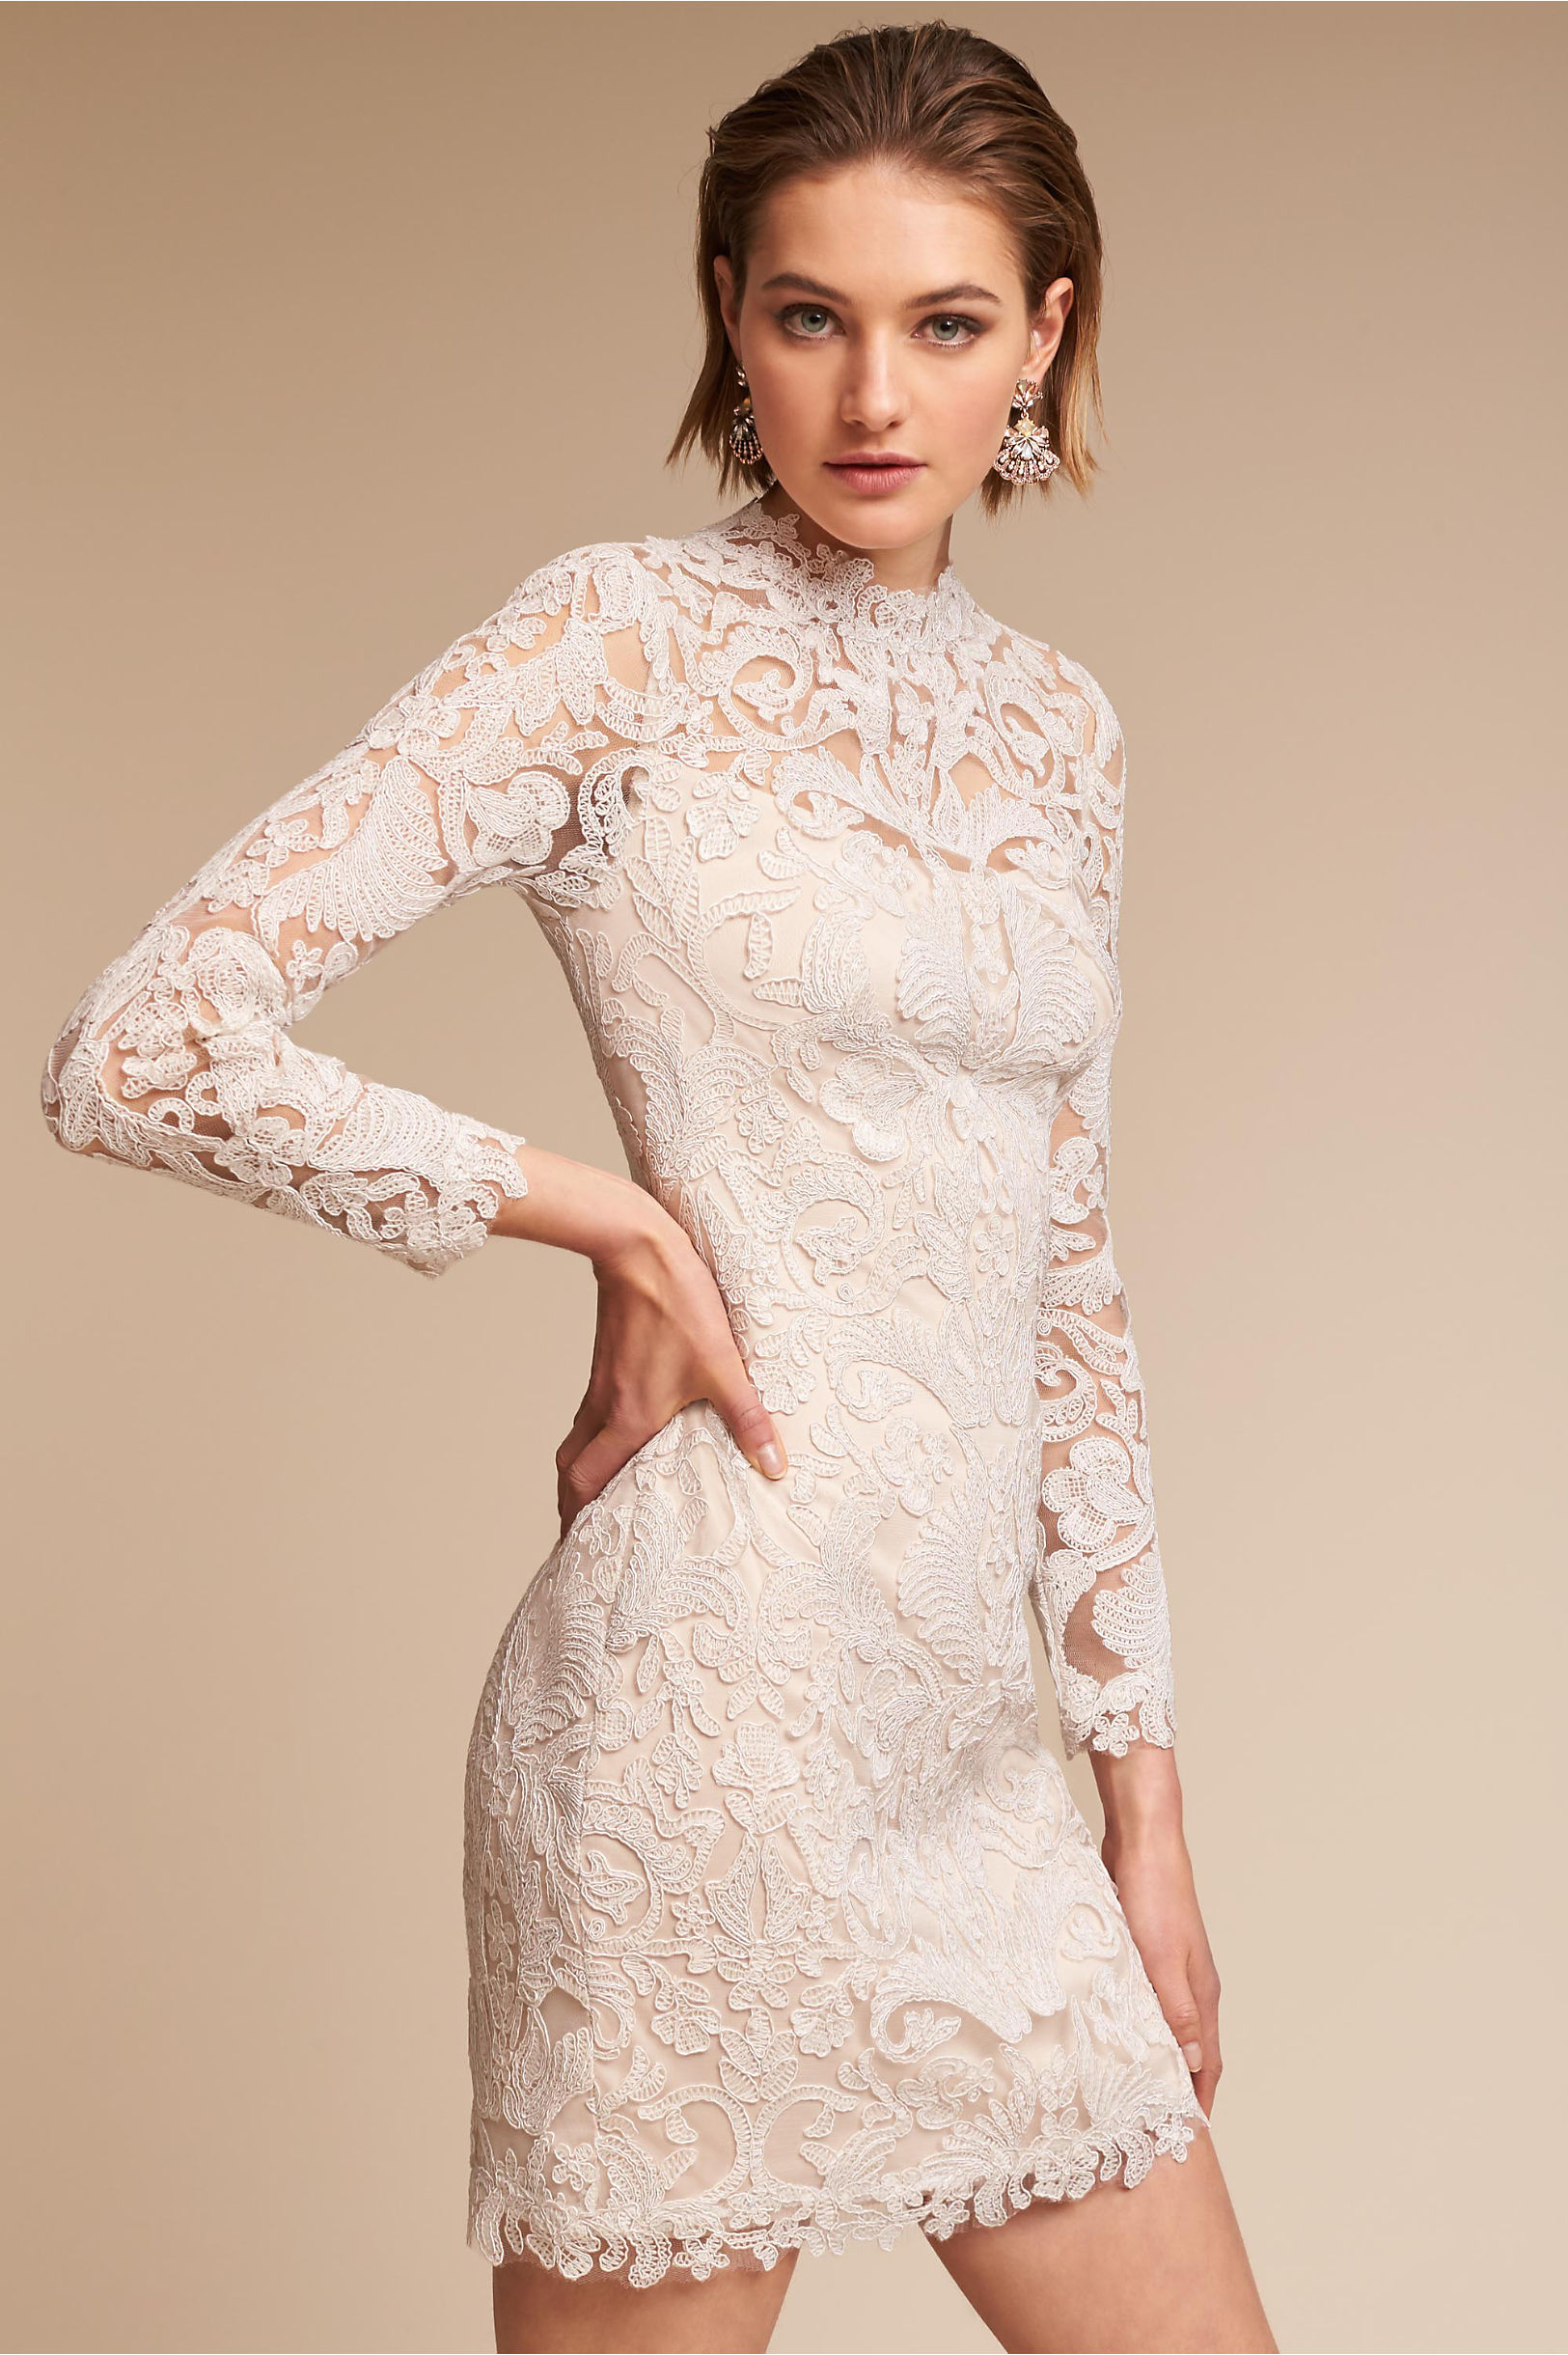 rehearsal dinner dresses | wedding rehearsal gowns | bhldn